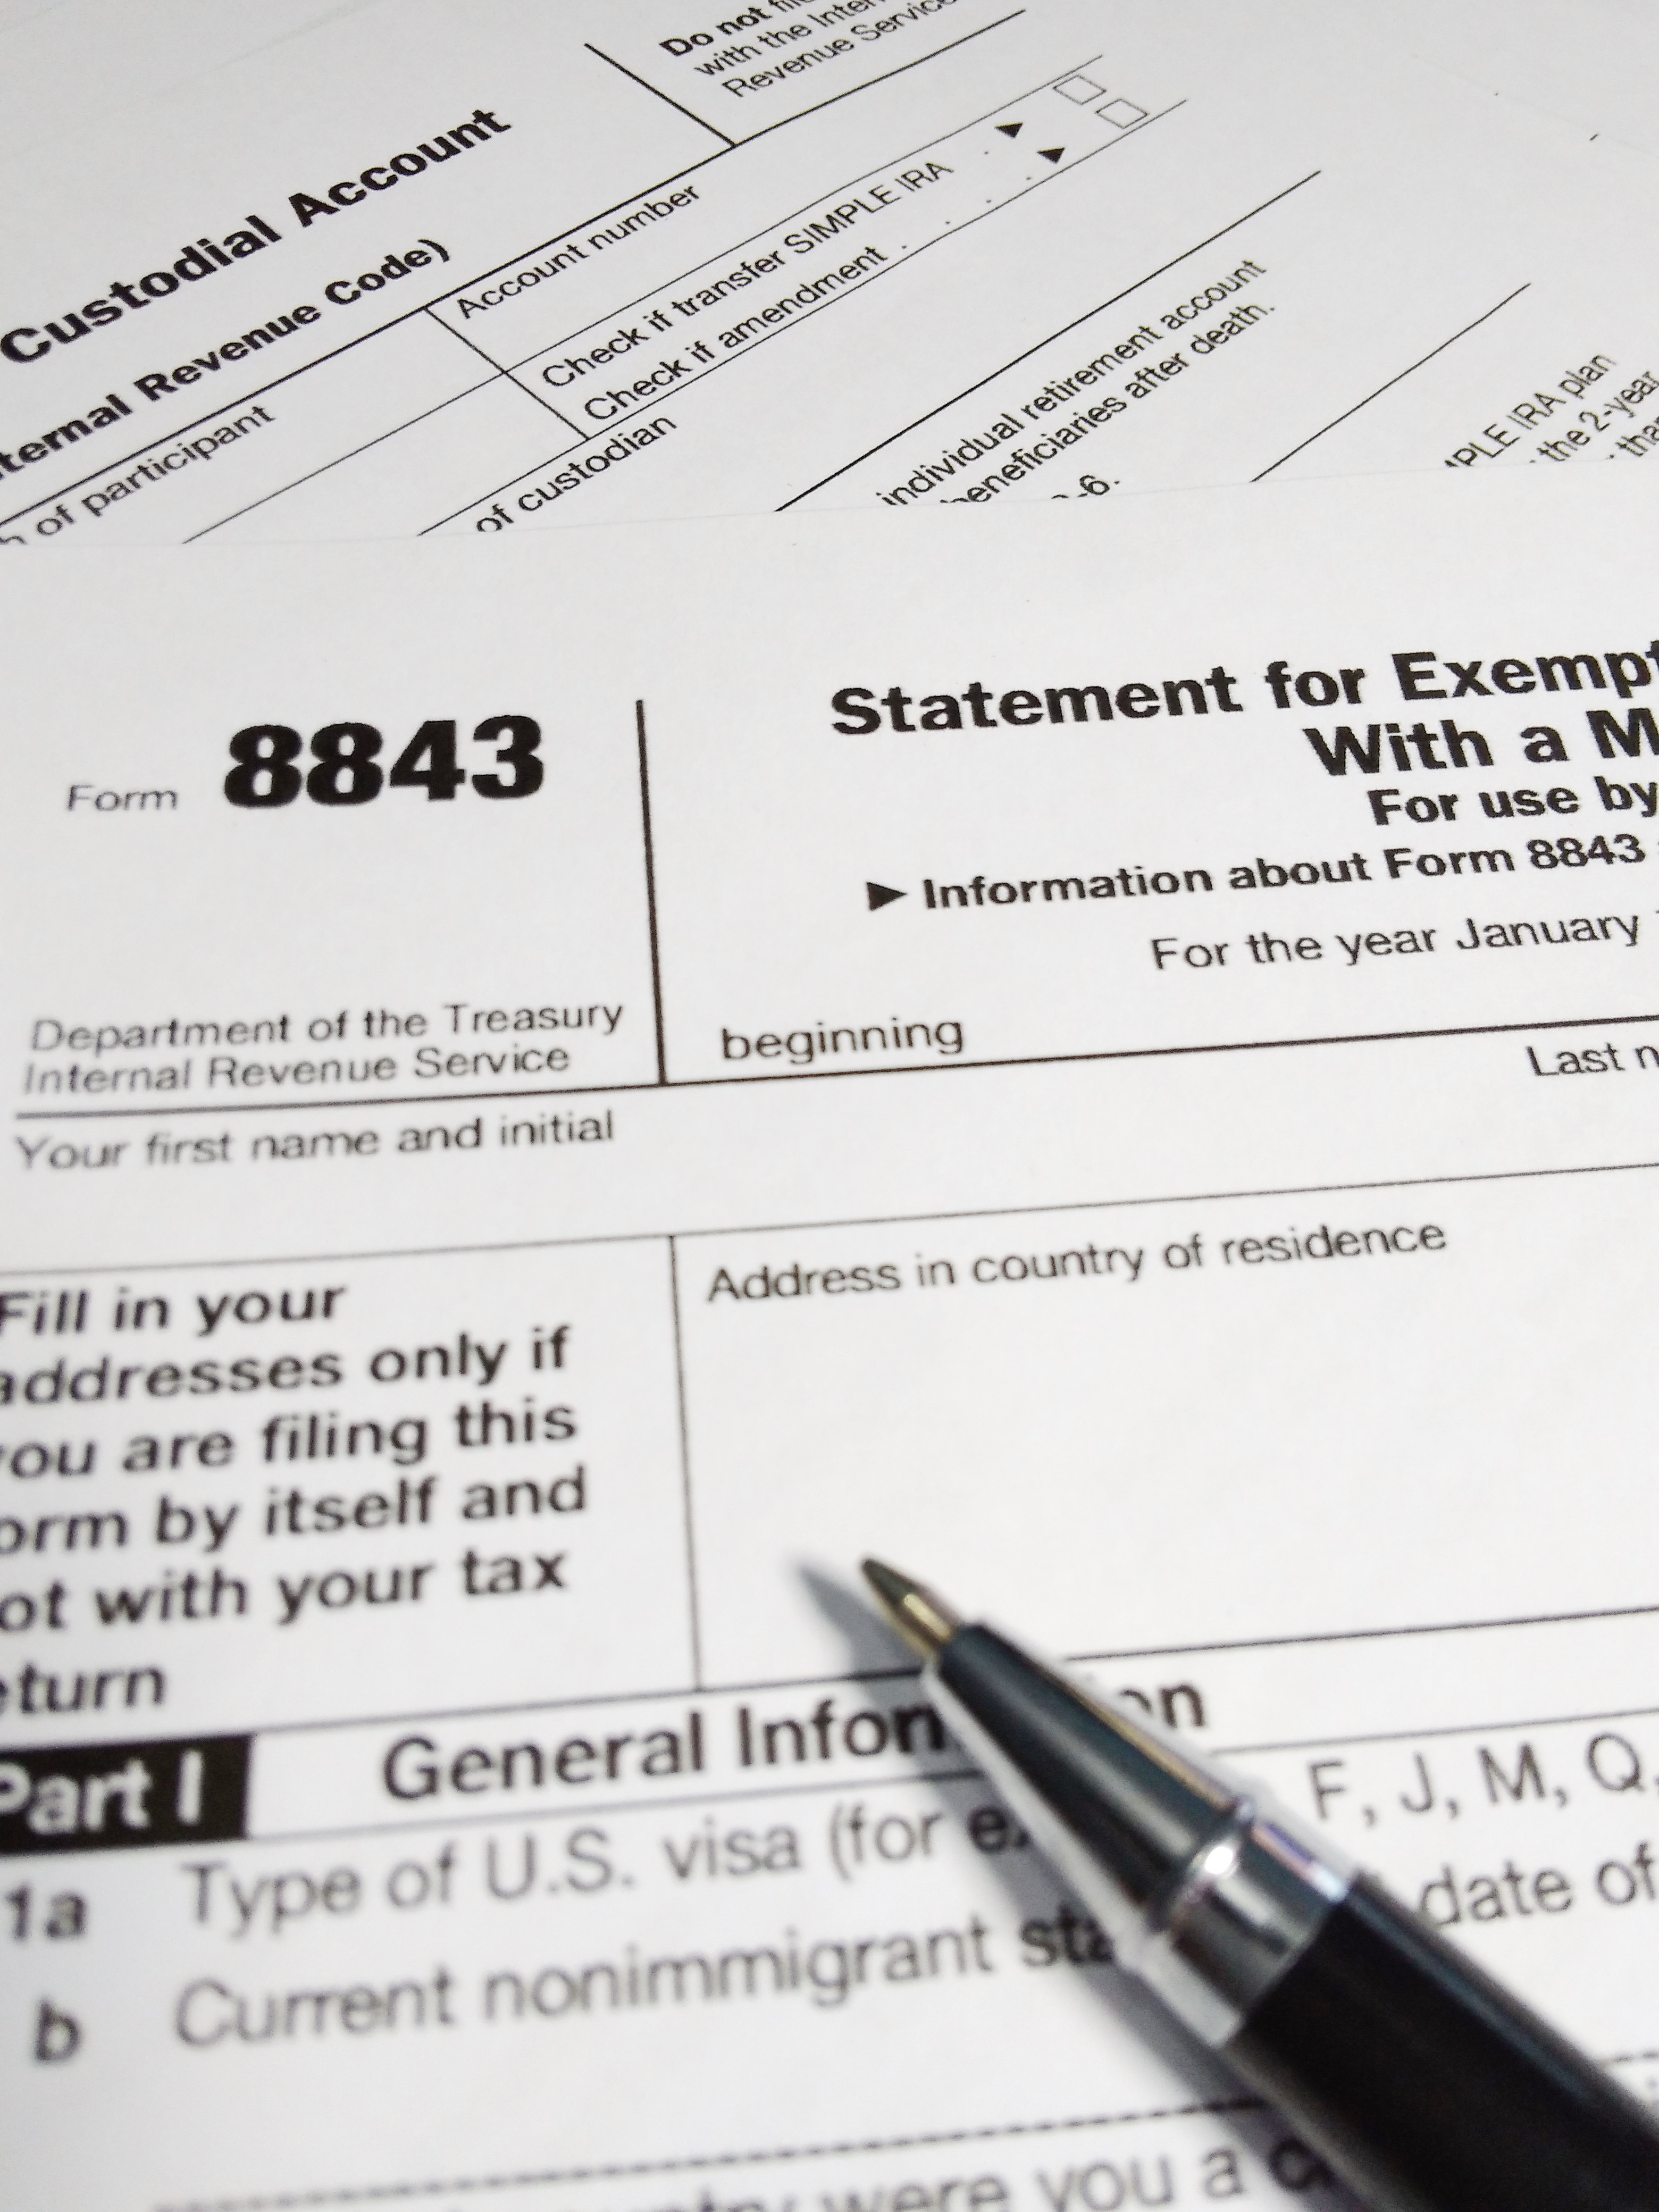 Are Military Retirements Exempt from Taxes?   Finance - Zacks